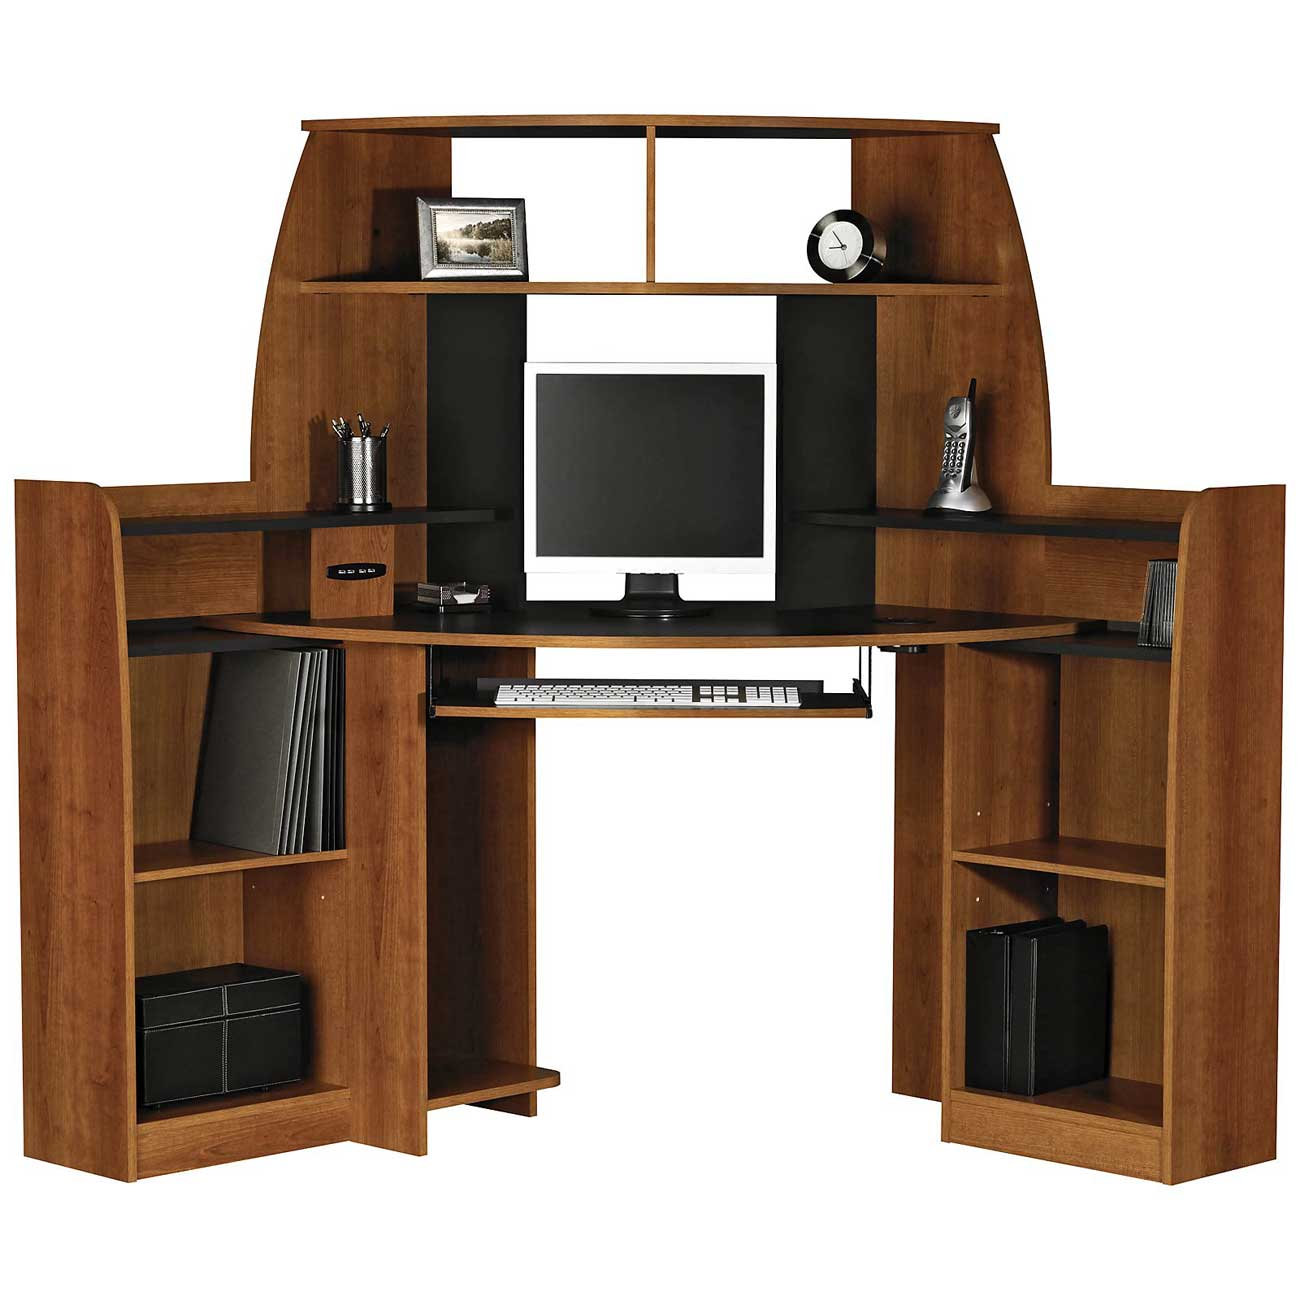 Solid Wood Corner Computer Desk With Double Storage